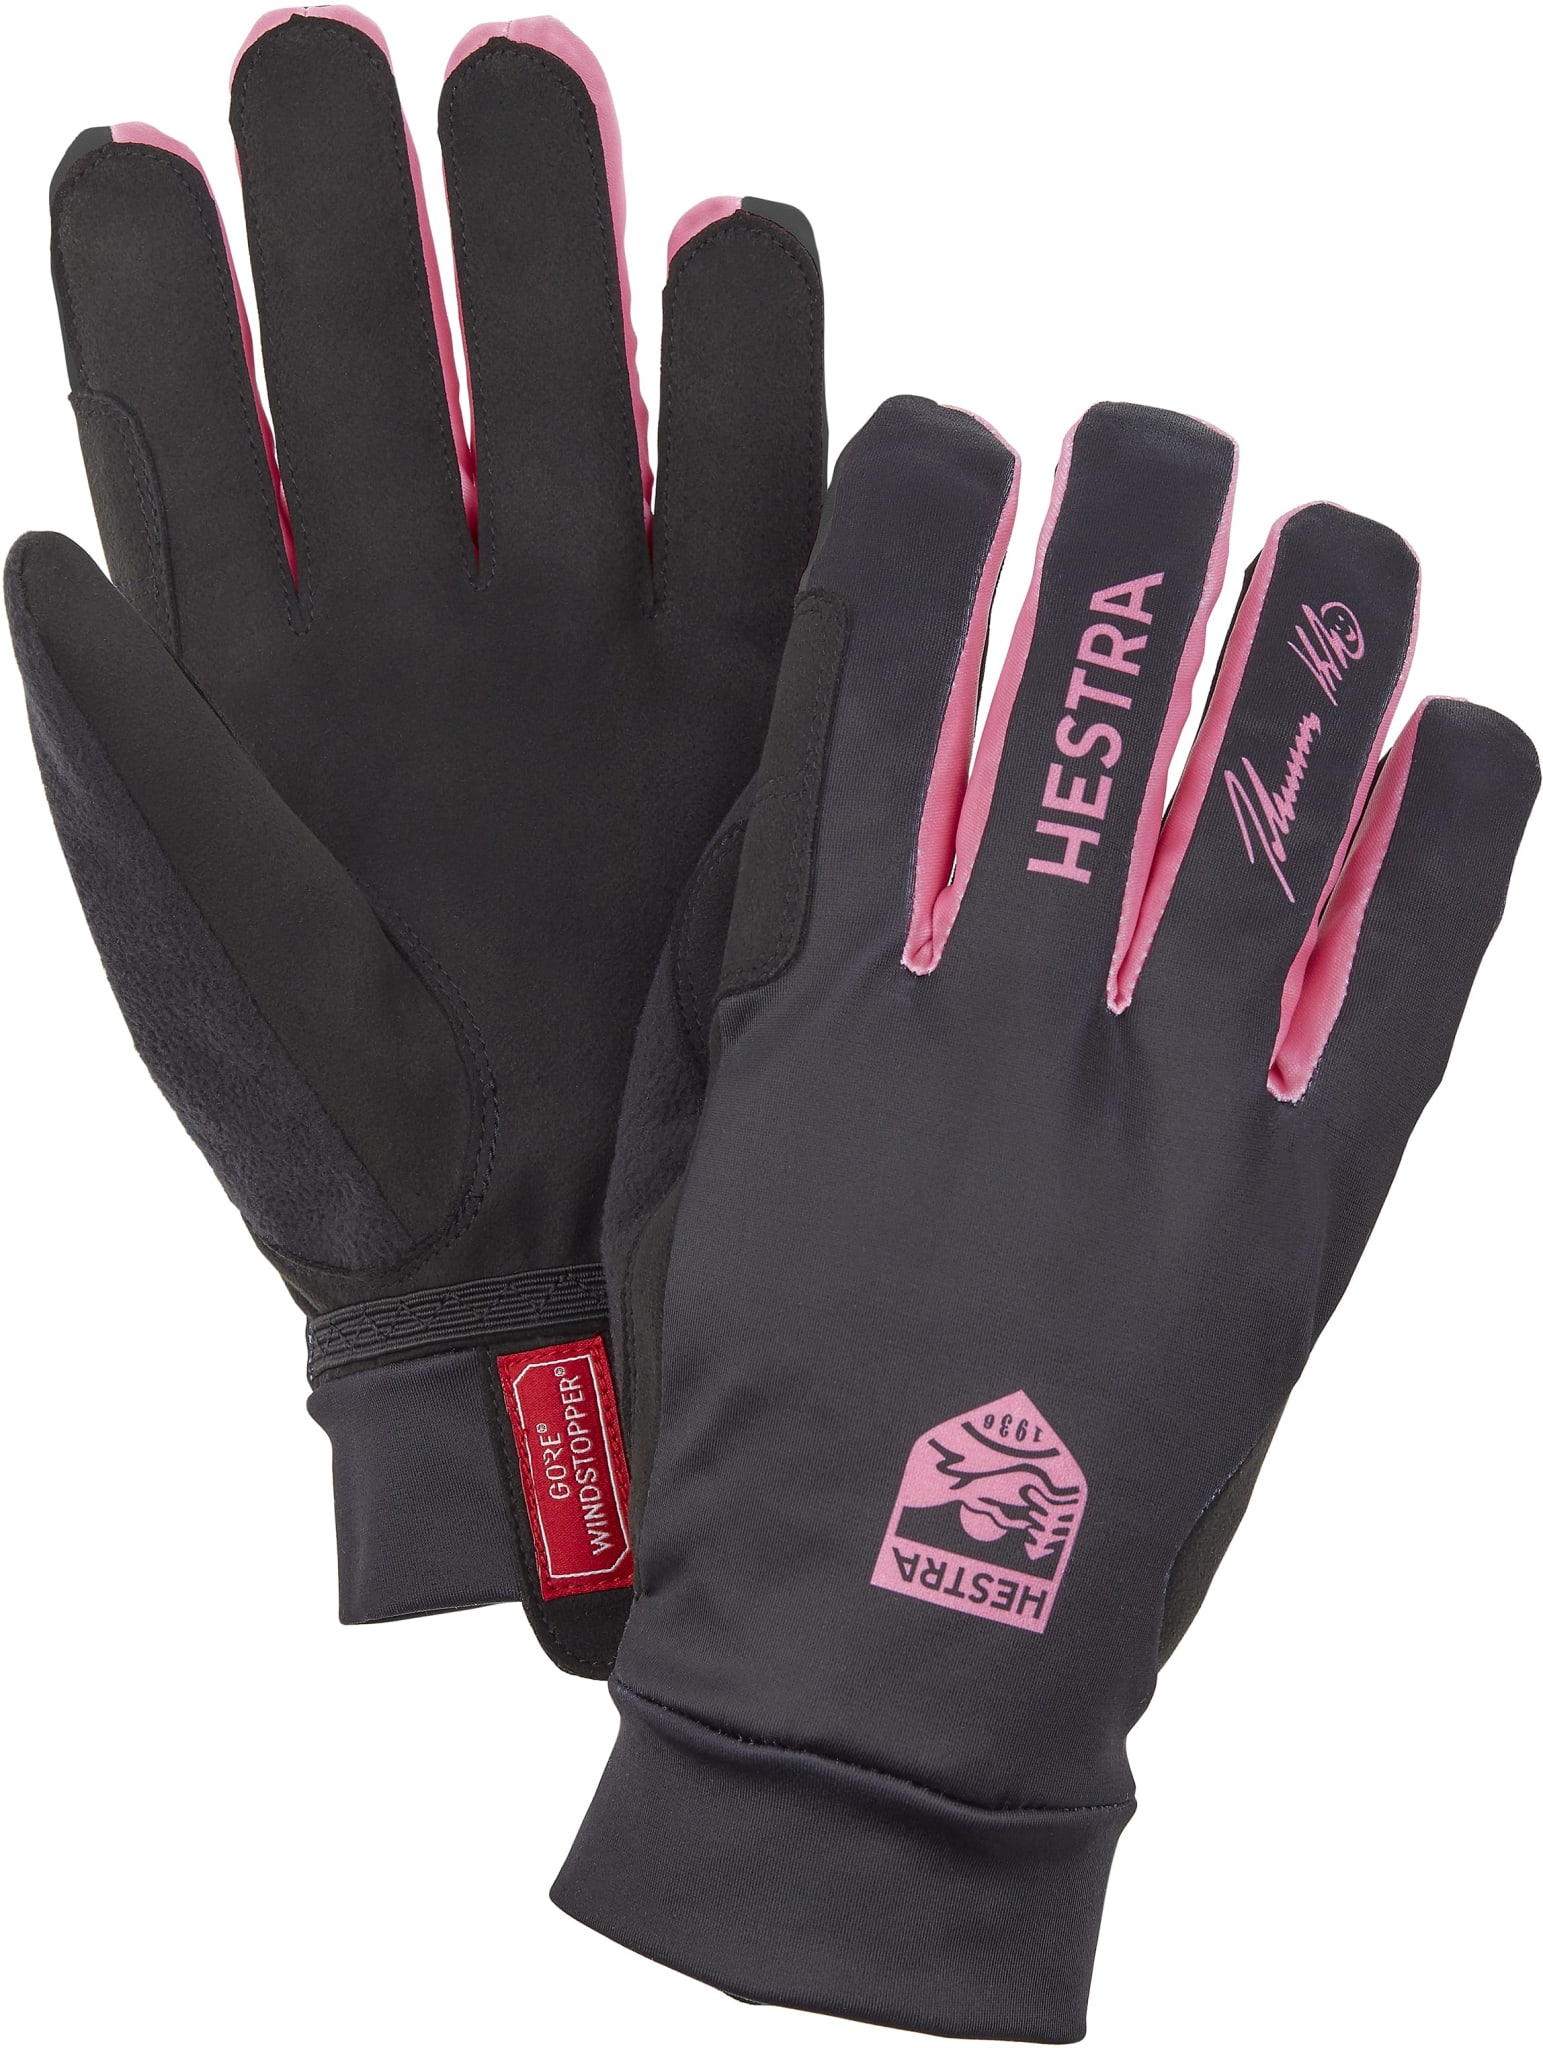 Klæbo Pro Model Gloves